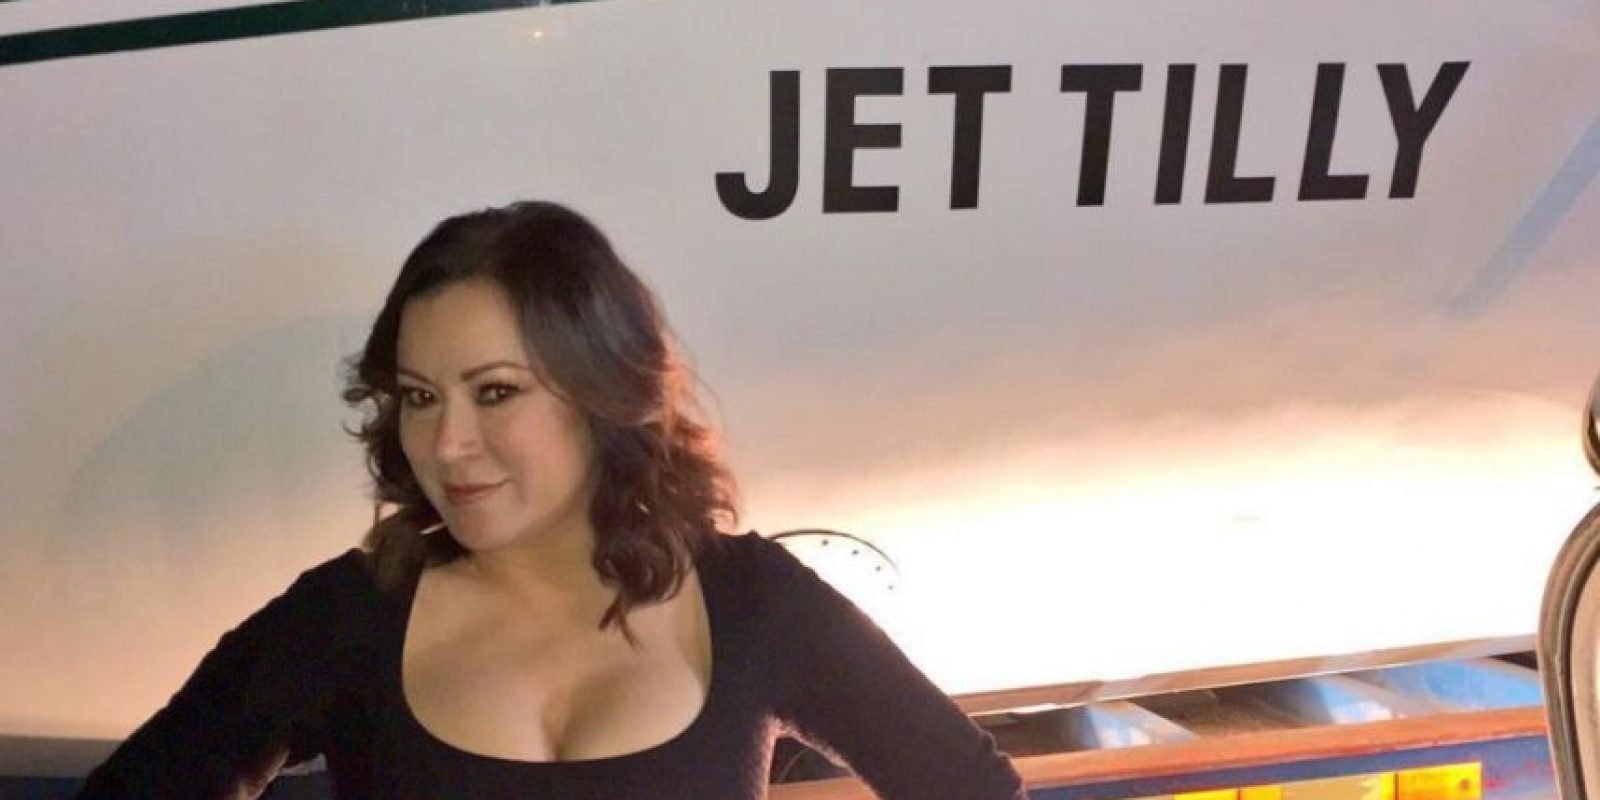 Foto: Vía instagram.com/jennifertilly/